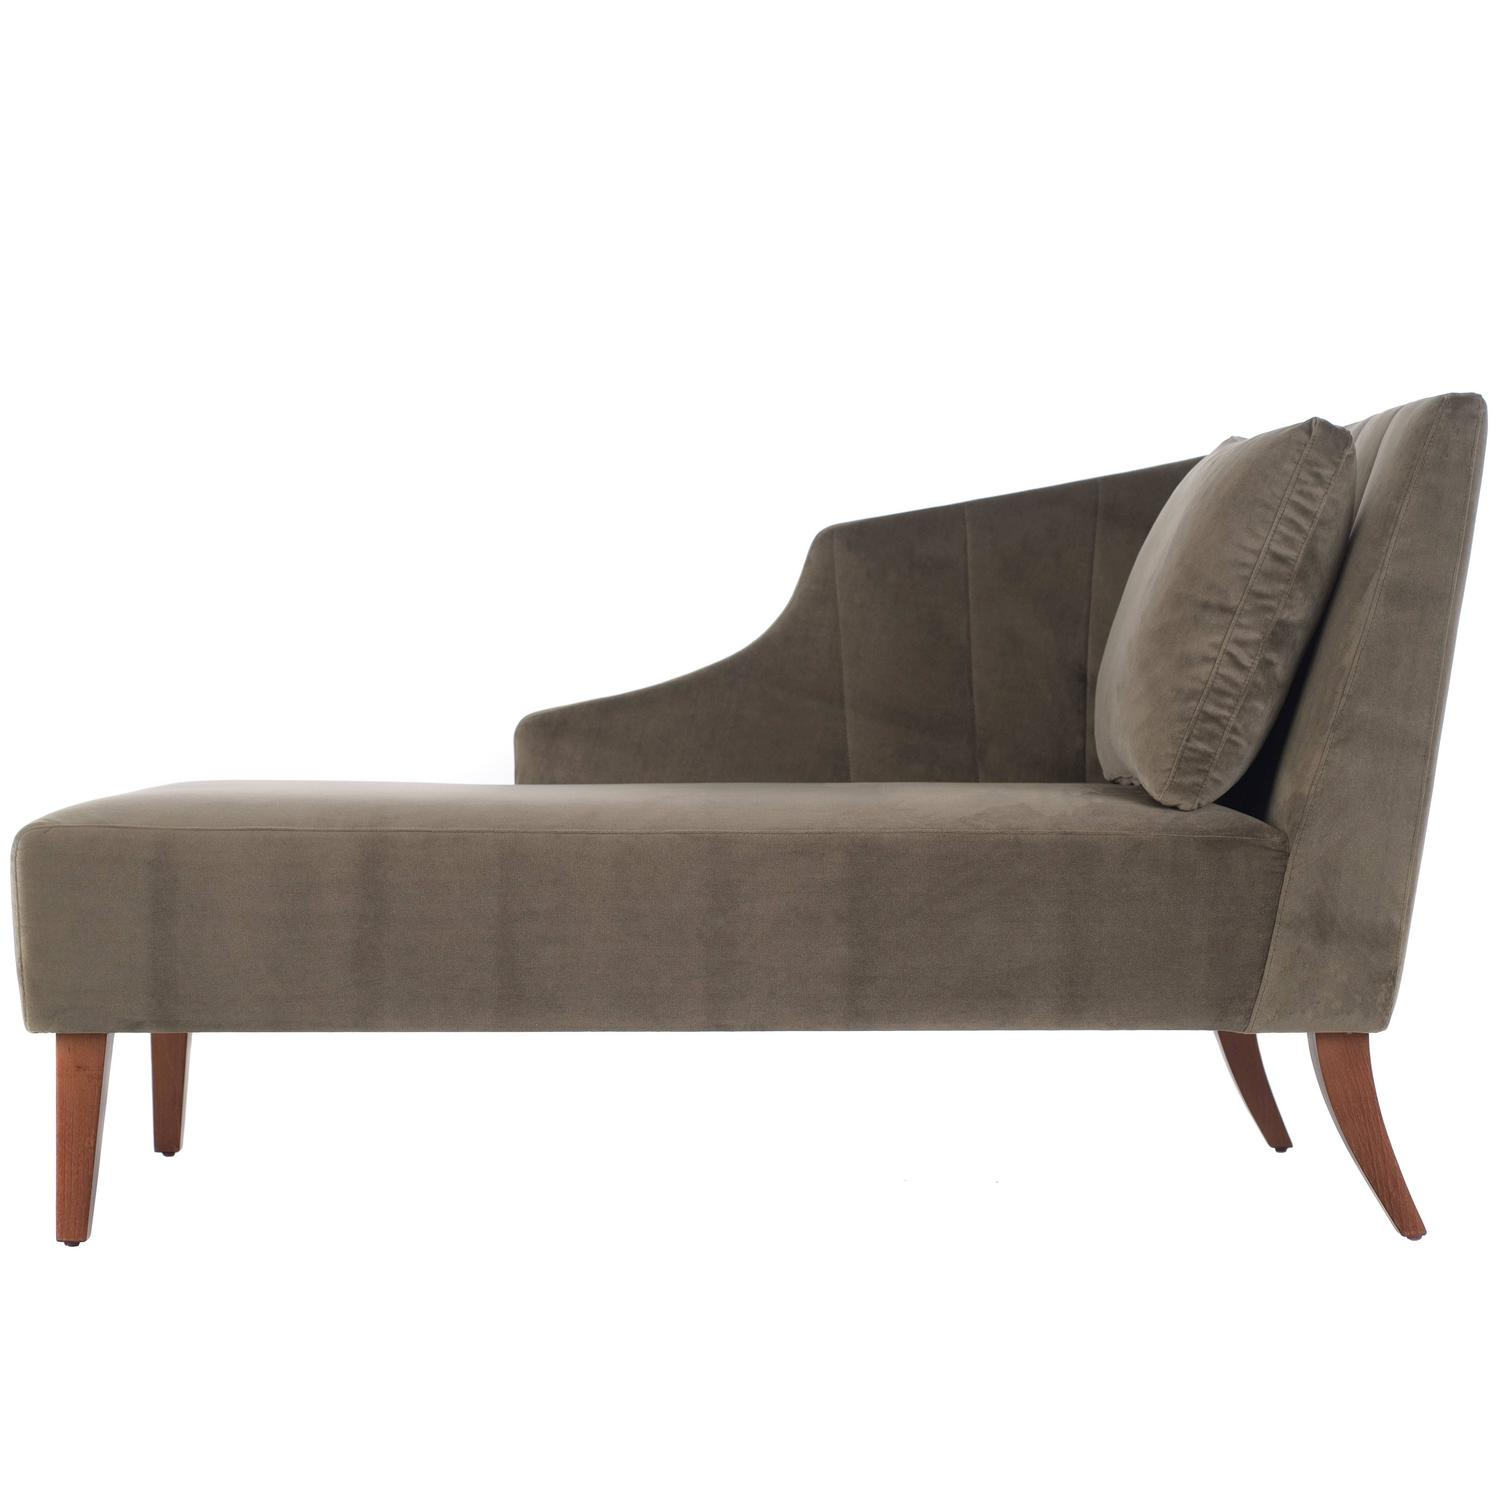 italian modern grey velvet and ash classic chaise longue for sale at 1stdibs. Black Bedroom Furniture Sets. Home Design Ideas